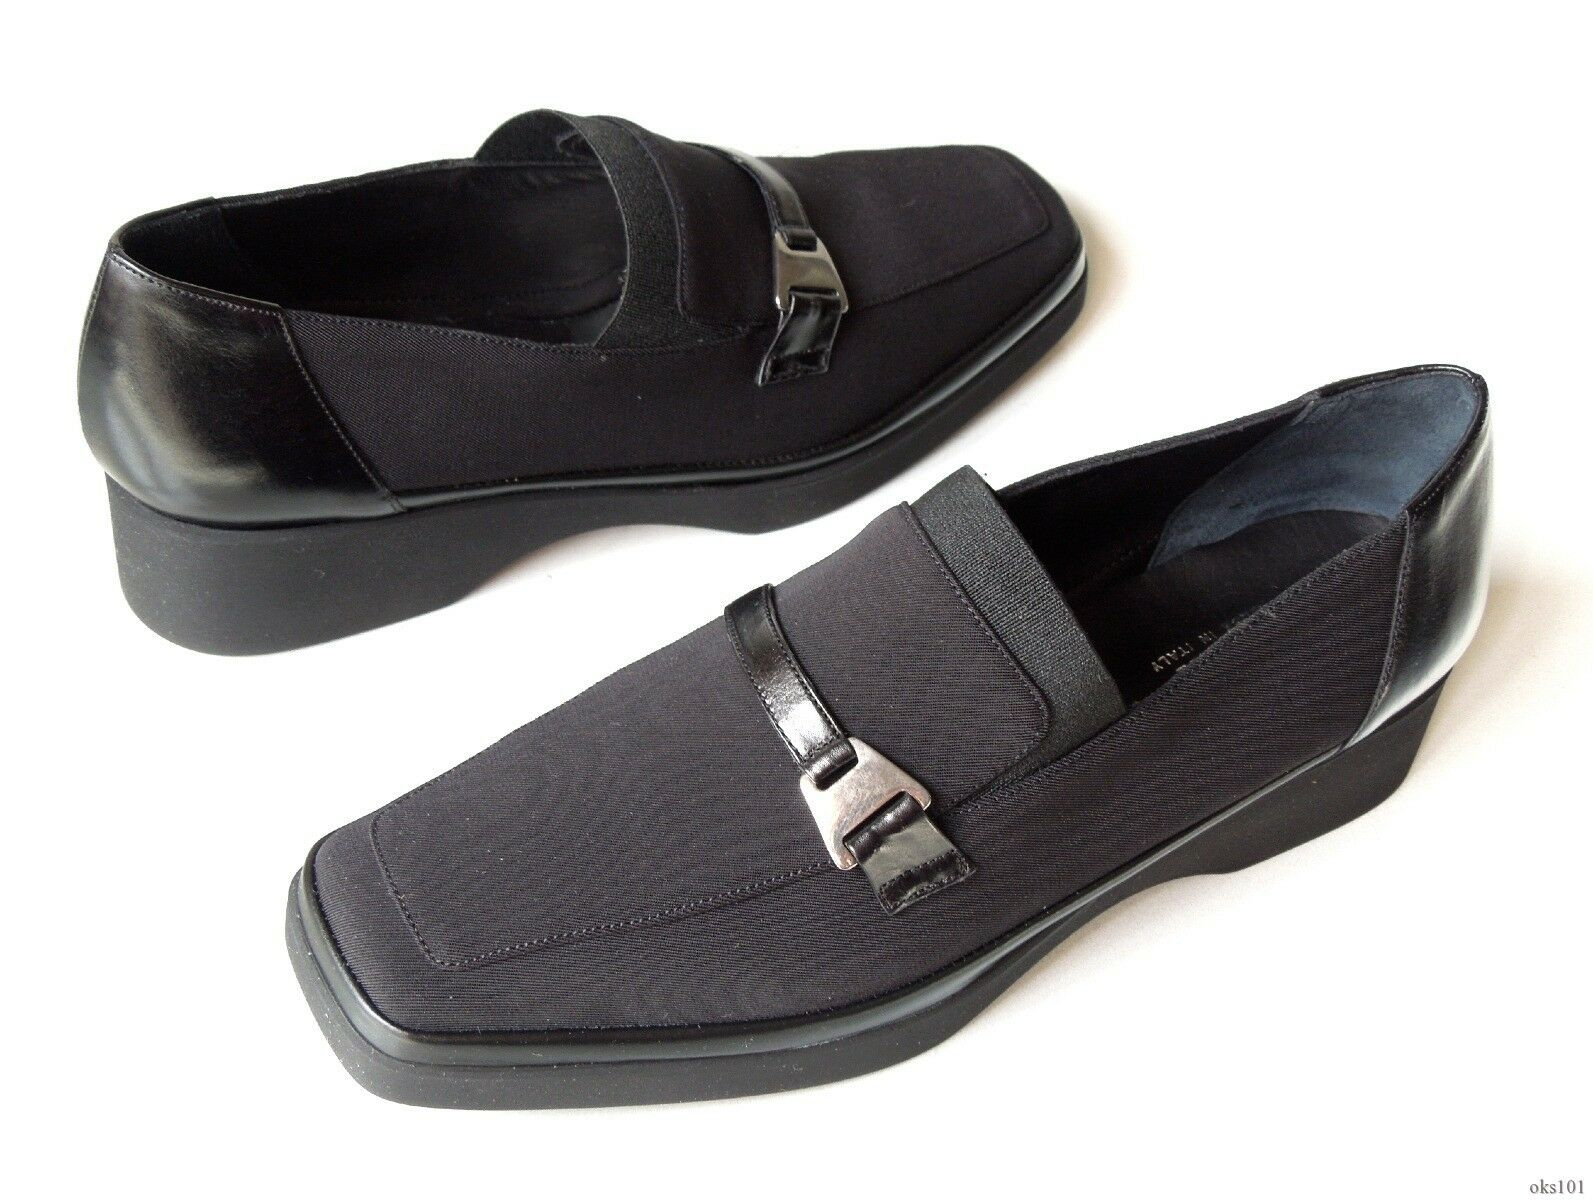 new RANGONI 'Imola' schwarz Leder/canvas loafers schuhe made in  6 - comfort